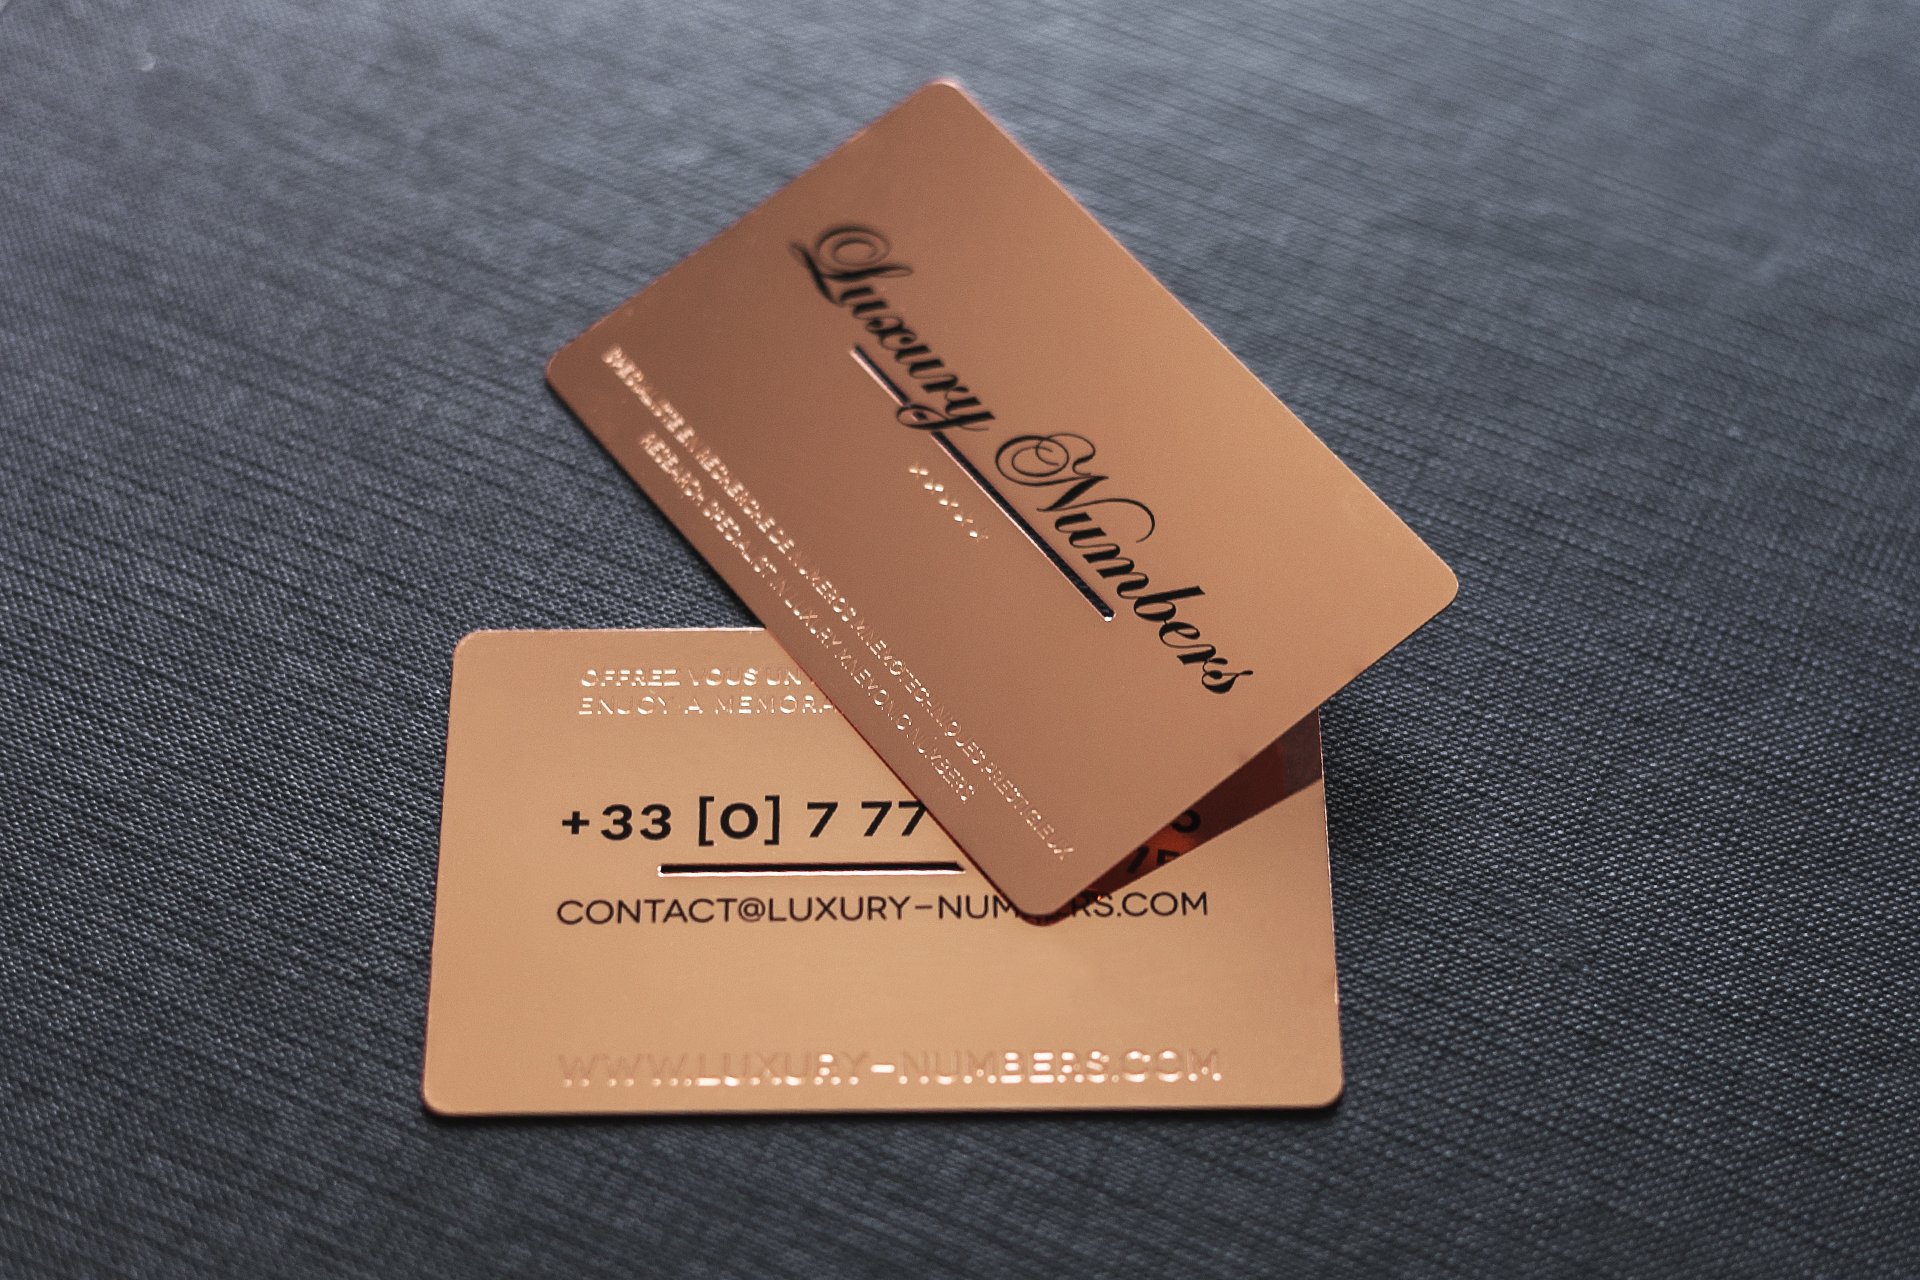 Project luxury numbers impression de luxe rose gold mirror metal card magicingreecefo Image collections